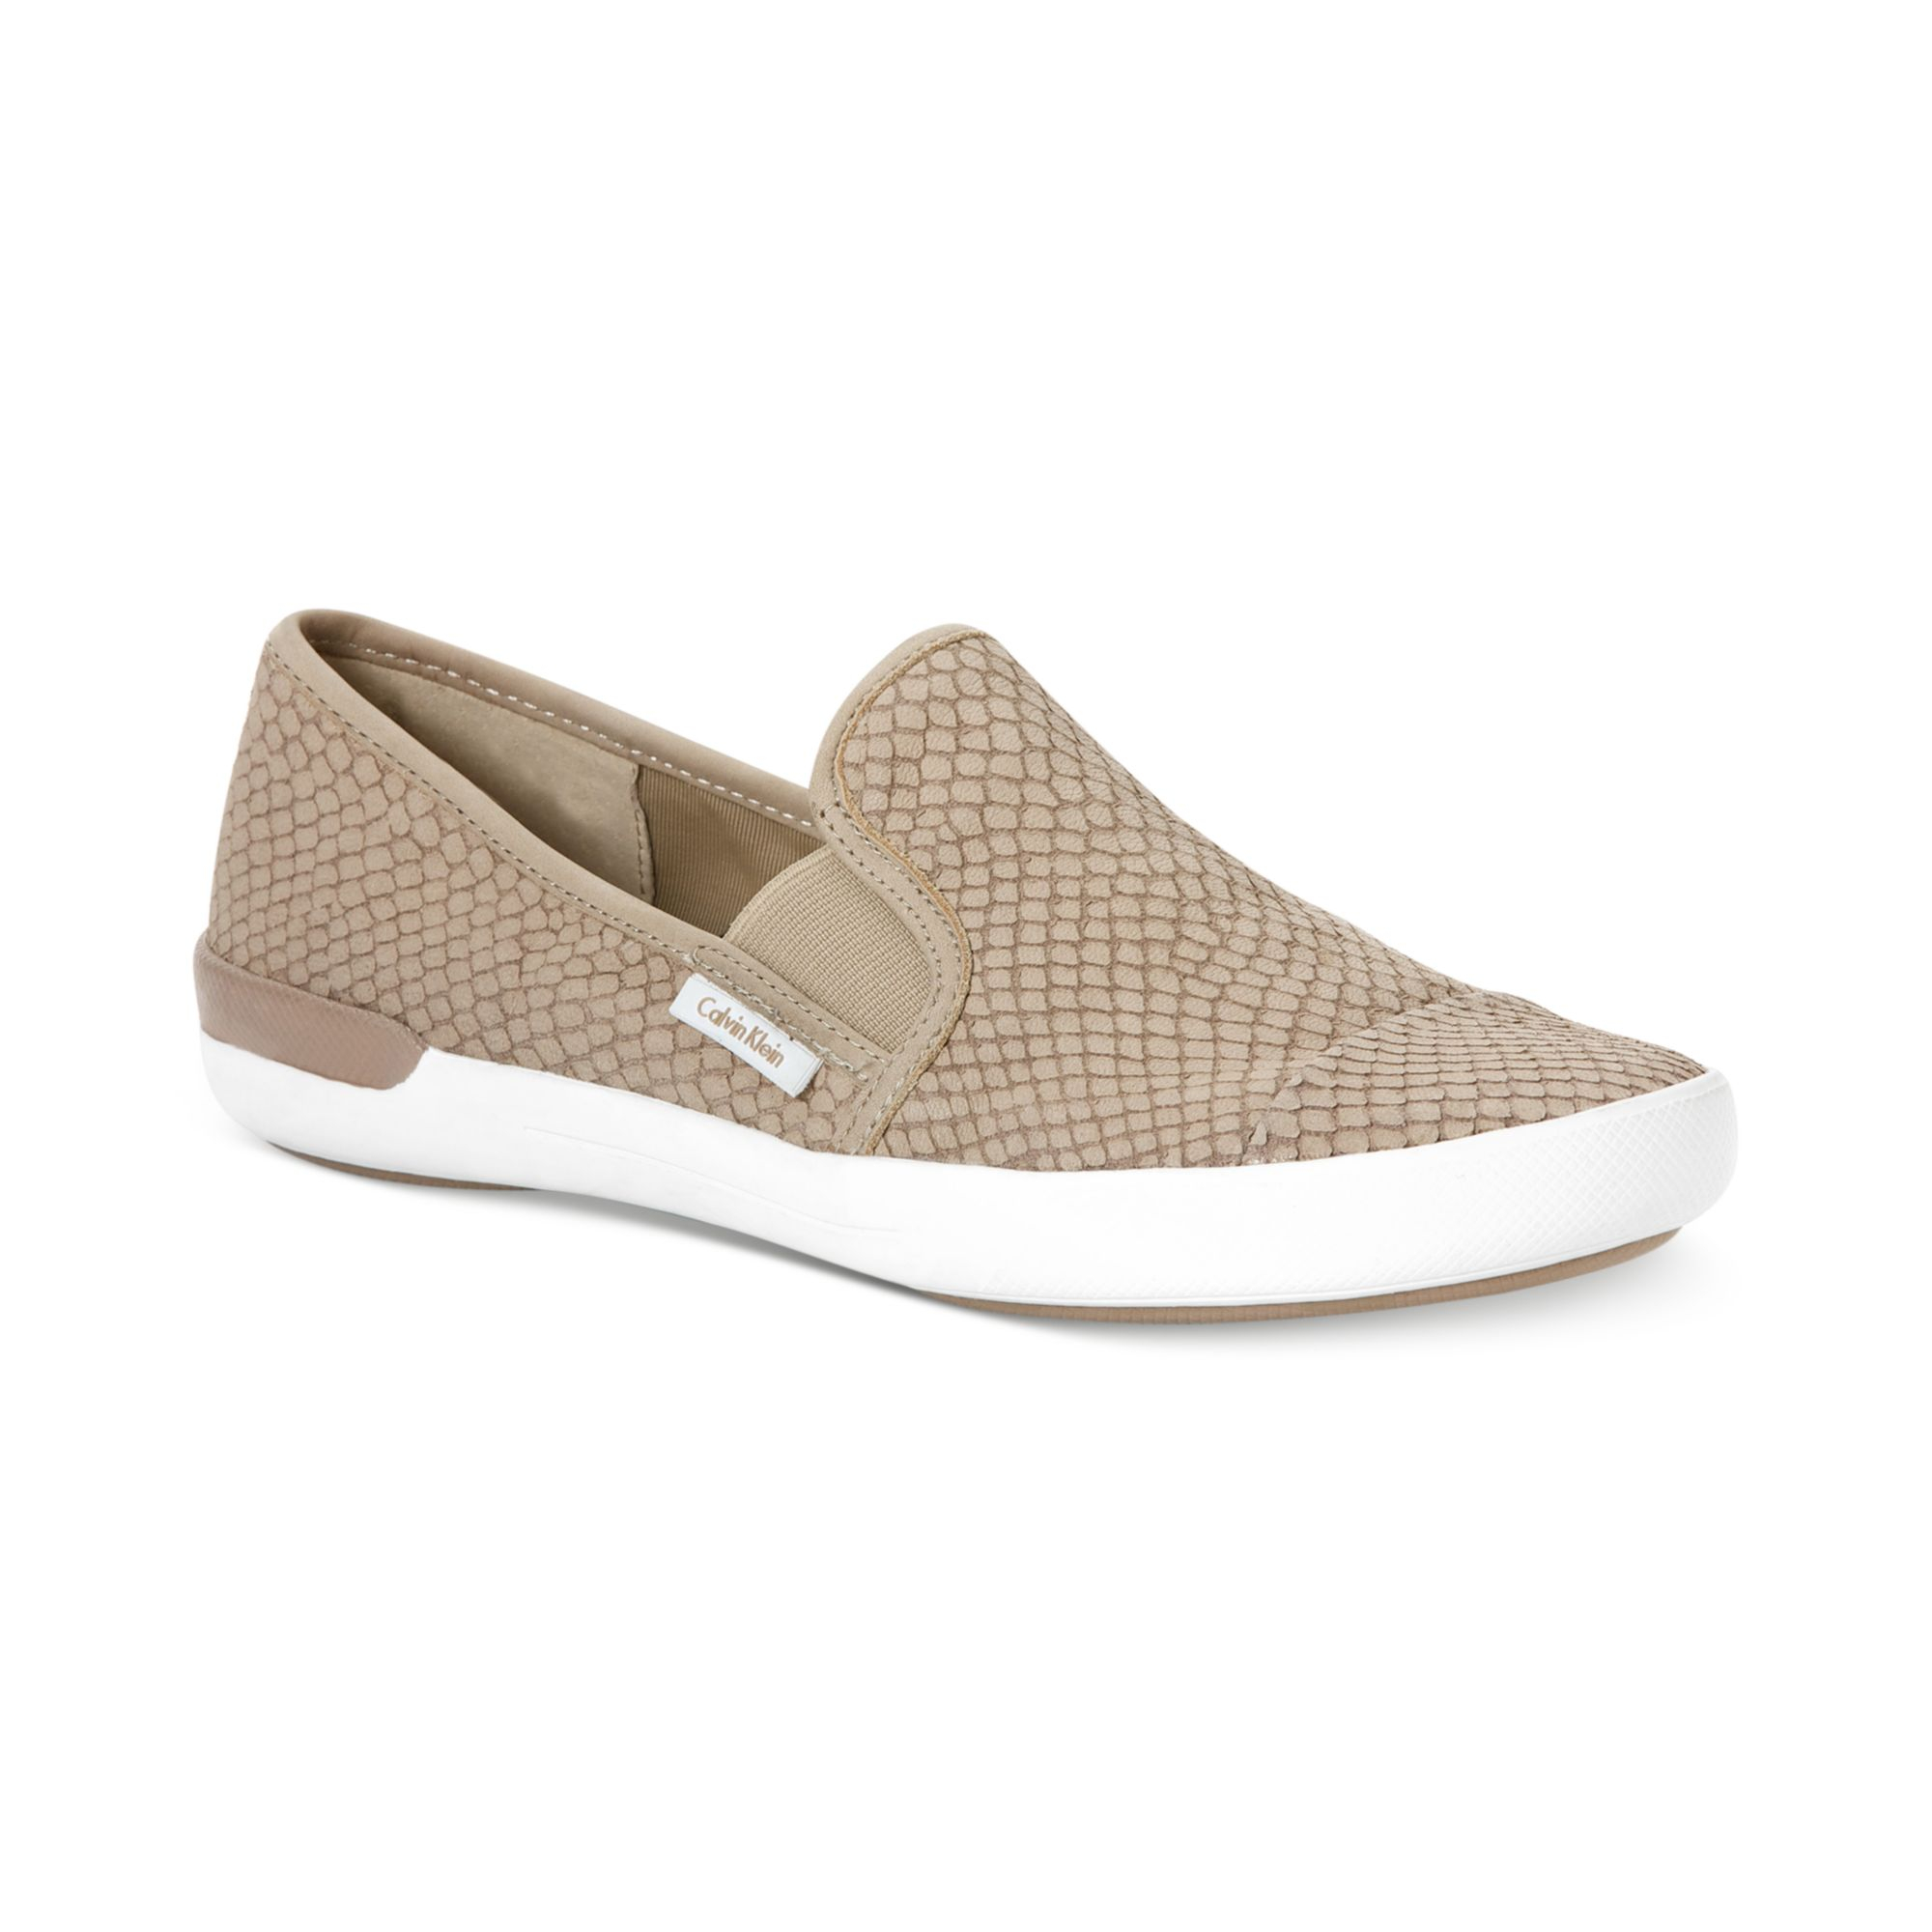 lyst calvin klein womens tacie sneakers in natural for men. Black Bedroom Furniture Sets. Home Design Ideas